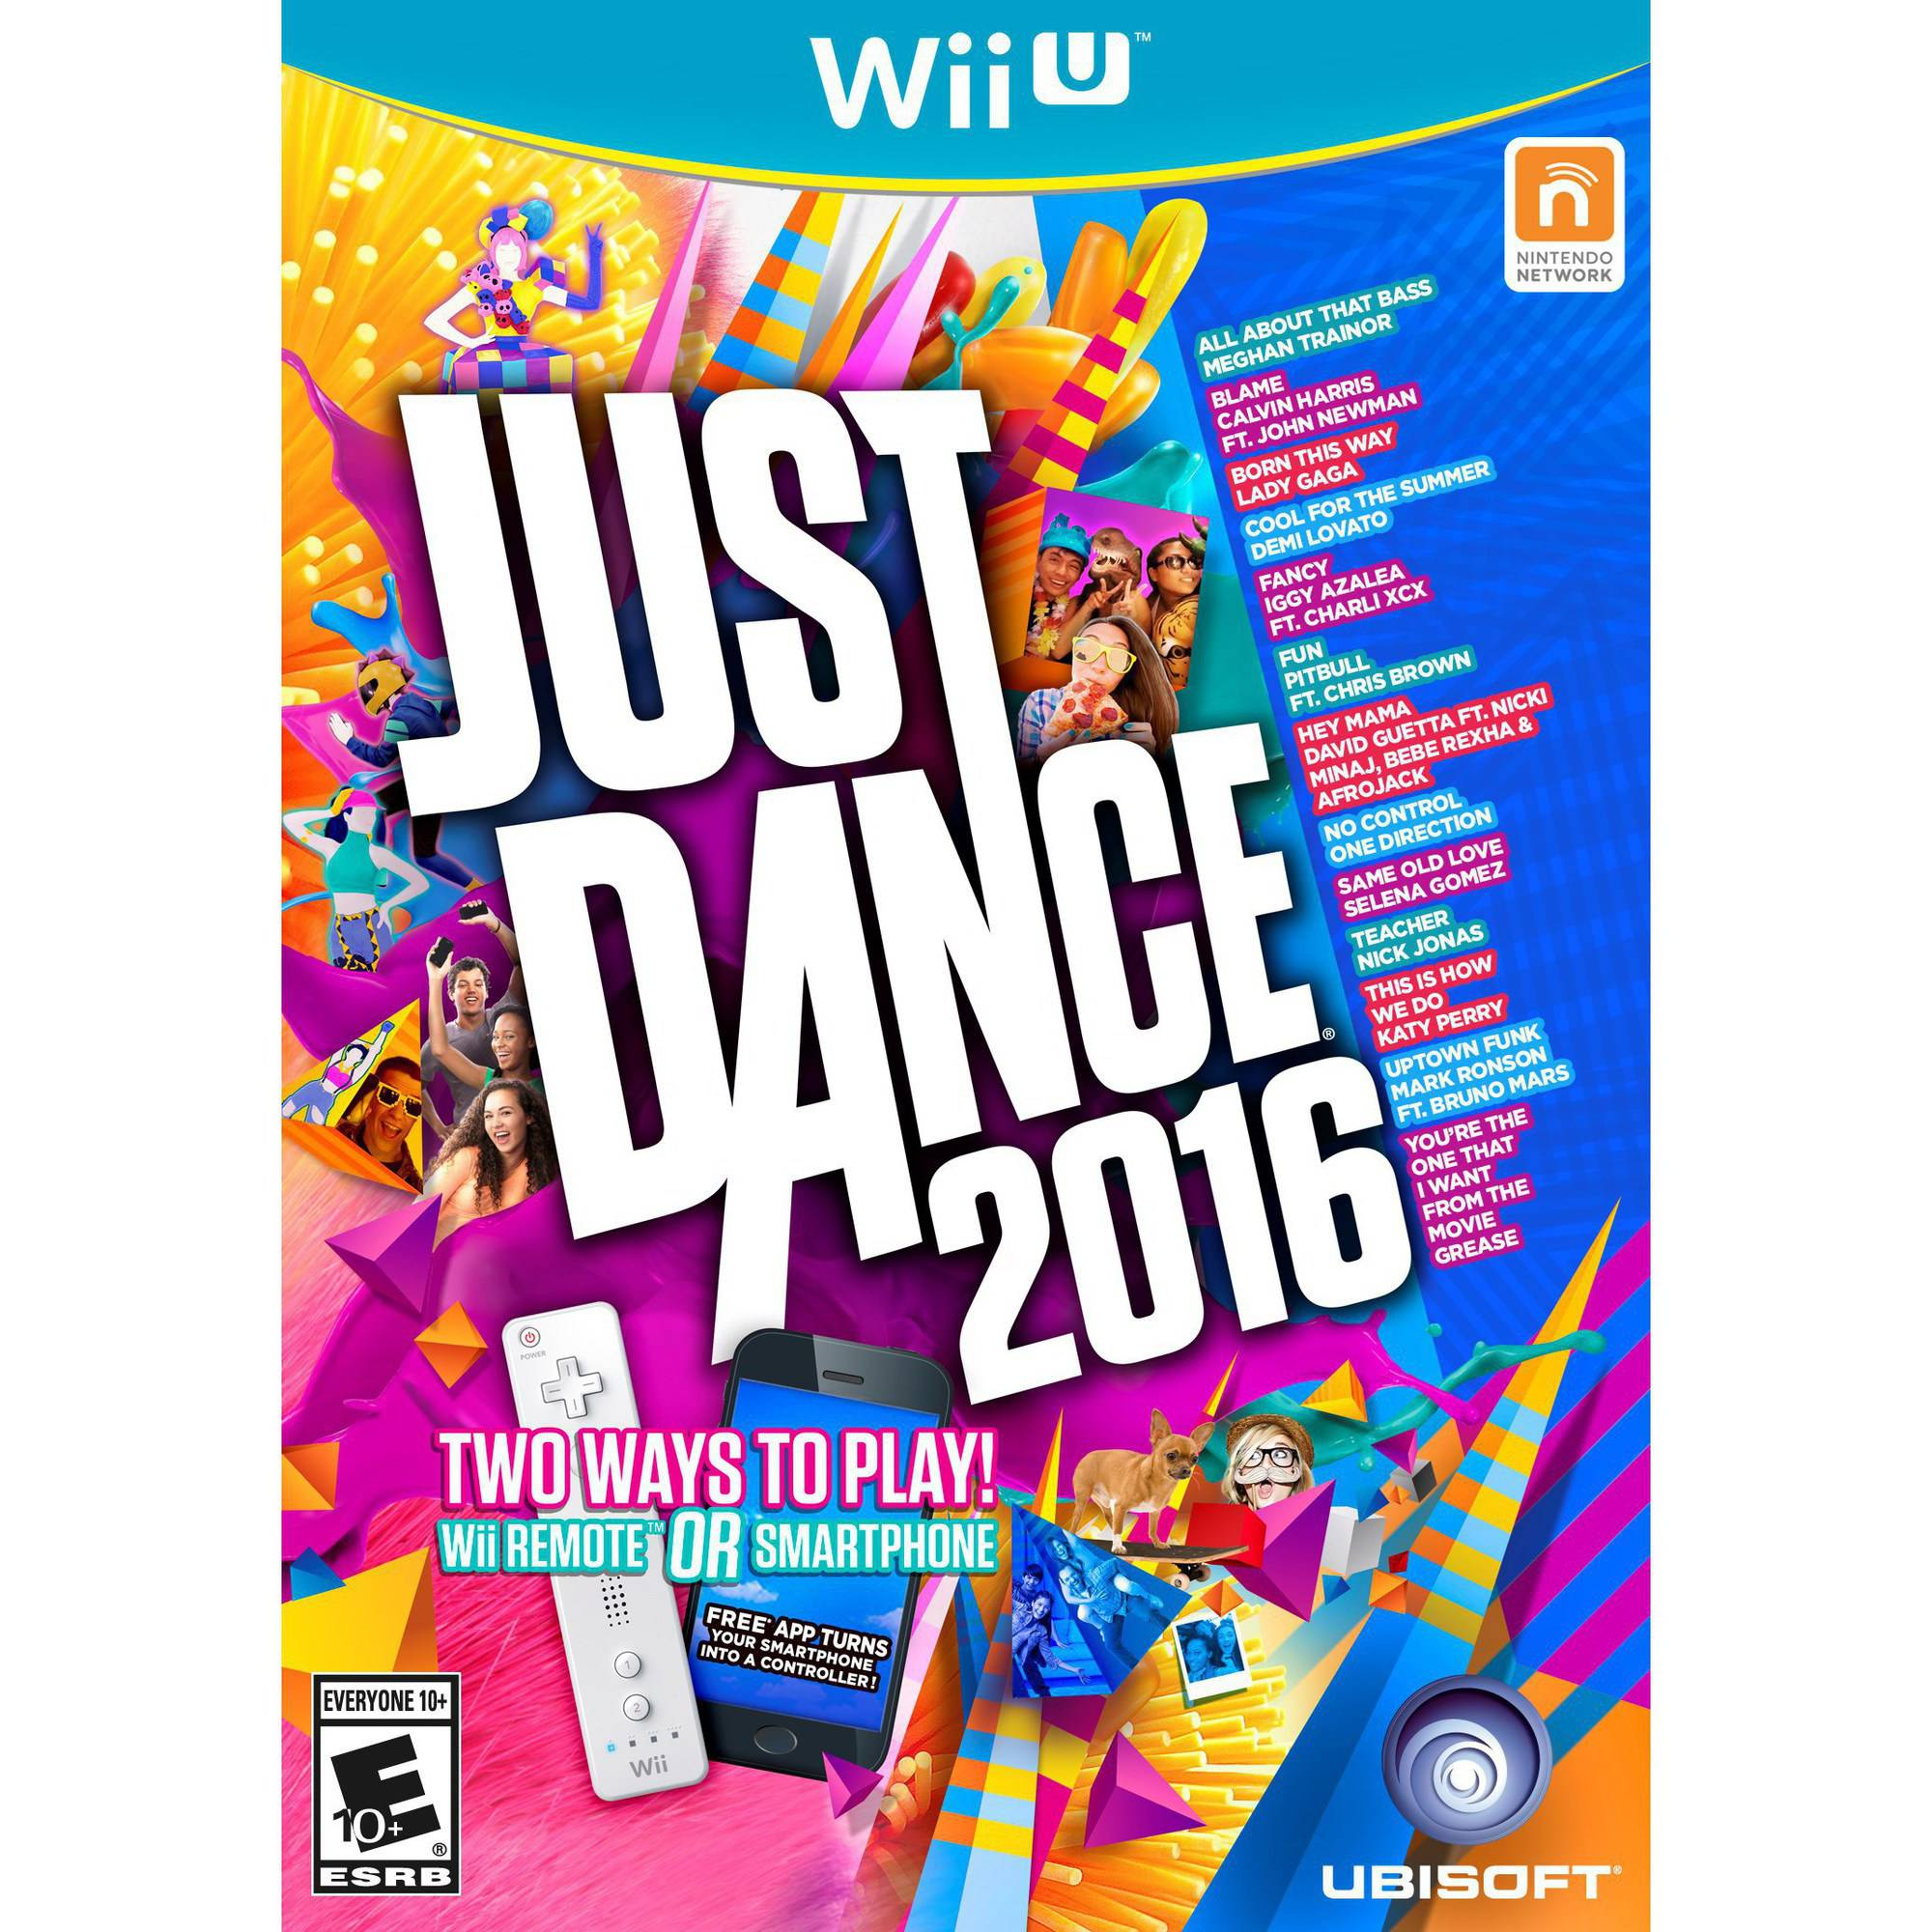 Just Dance 2016 (Wii U) - Pre-Owned